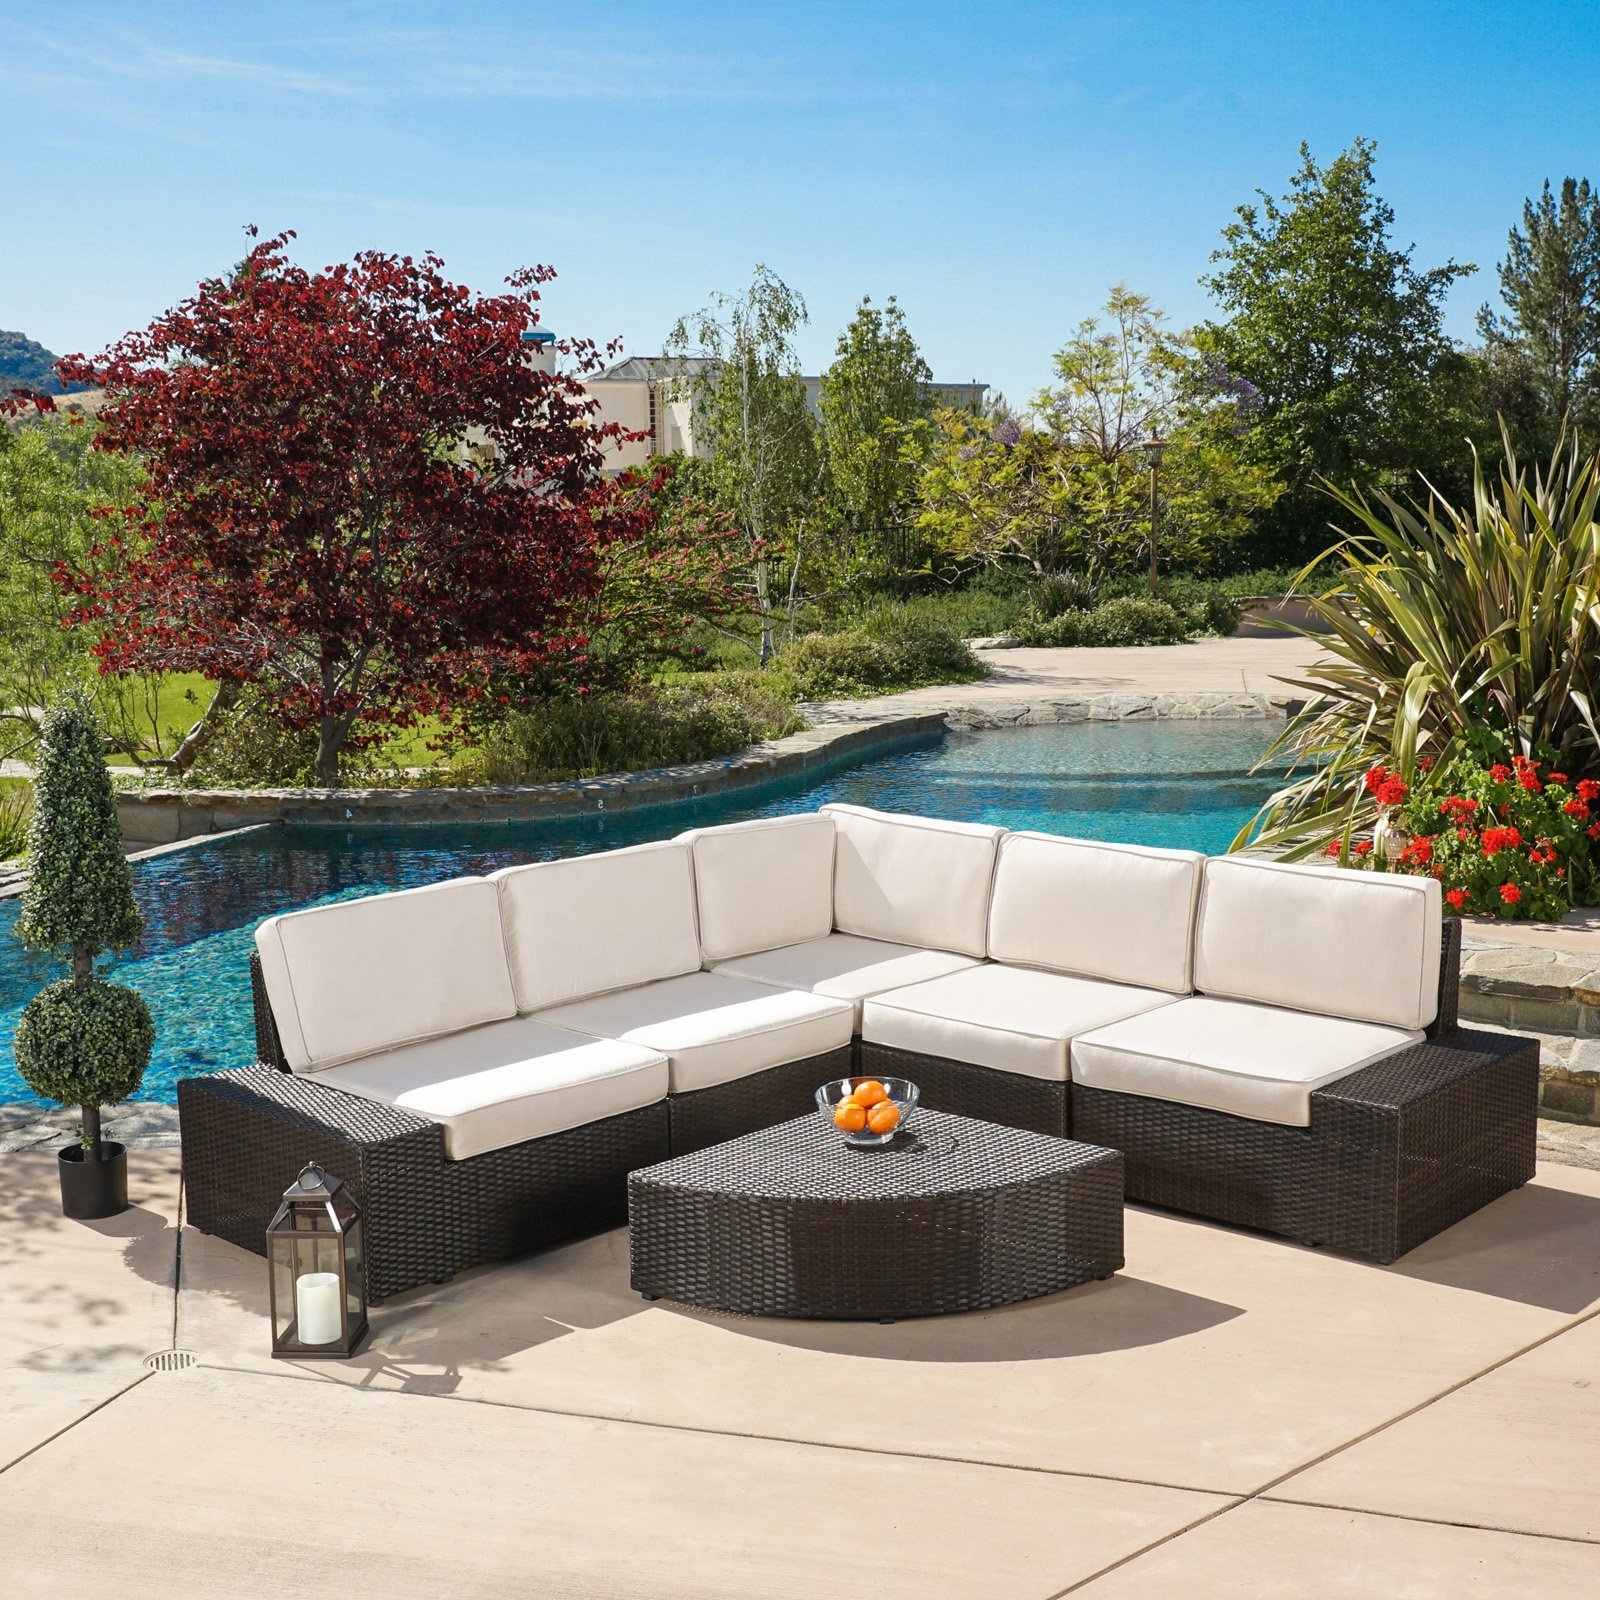 Zora Outdoor 6 Piece Sofa Conversation Set – Walmart Regarding Current Patio Conversation Sets With Sunbrella Cushions (View 15 of 20)